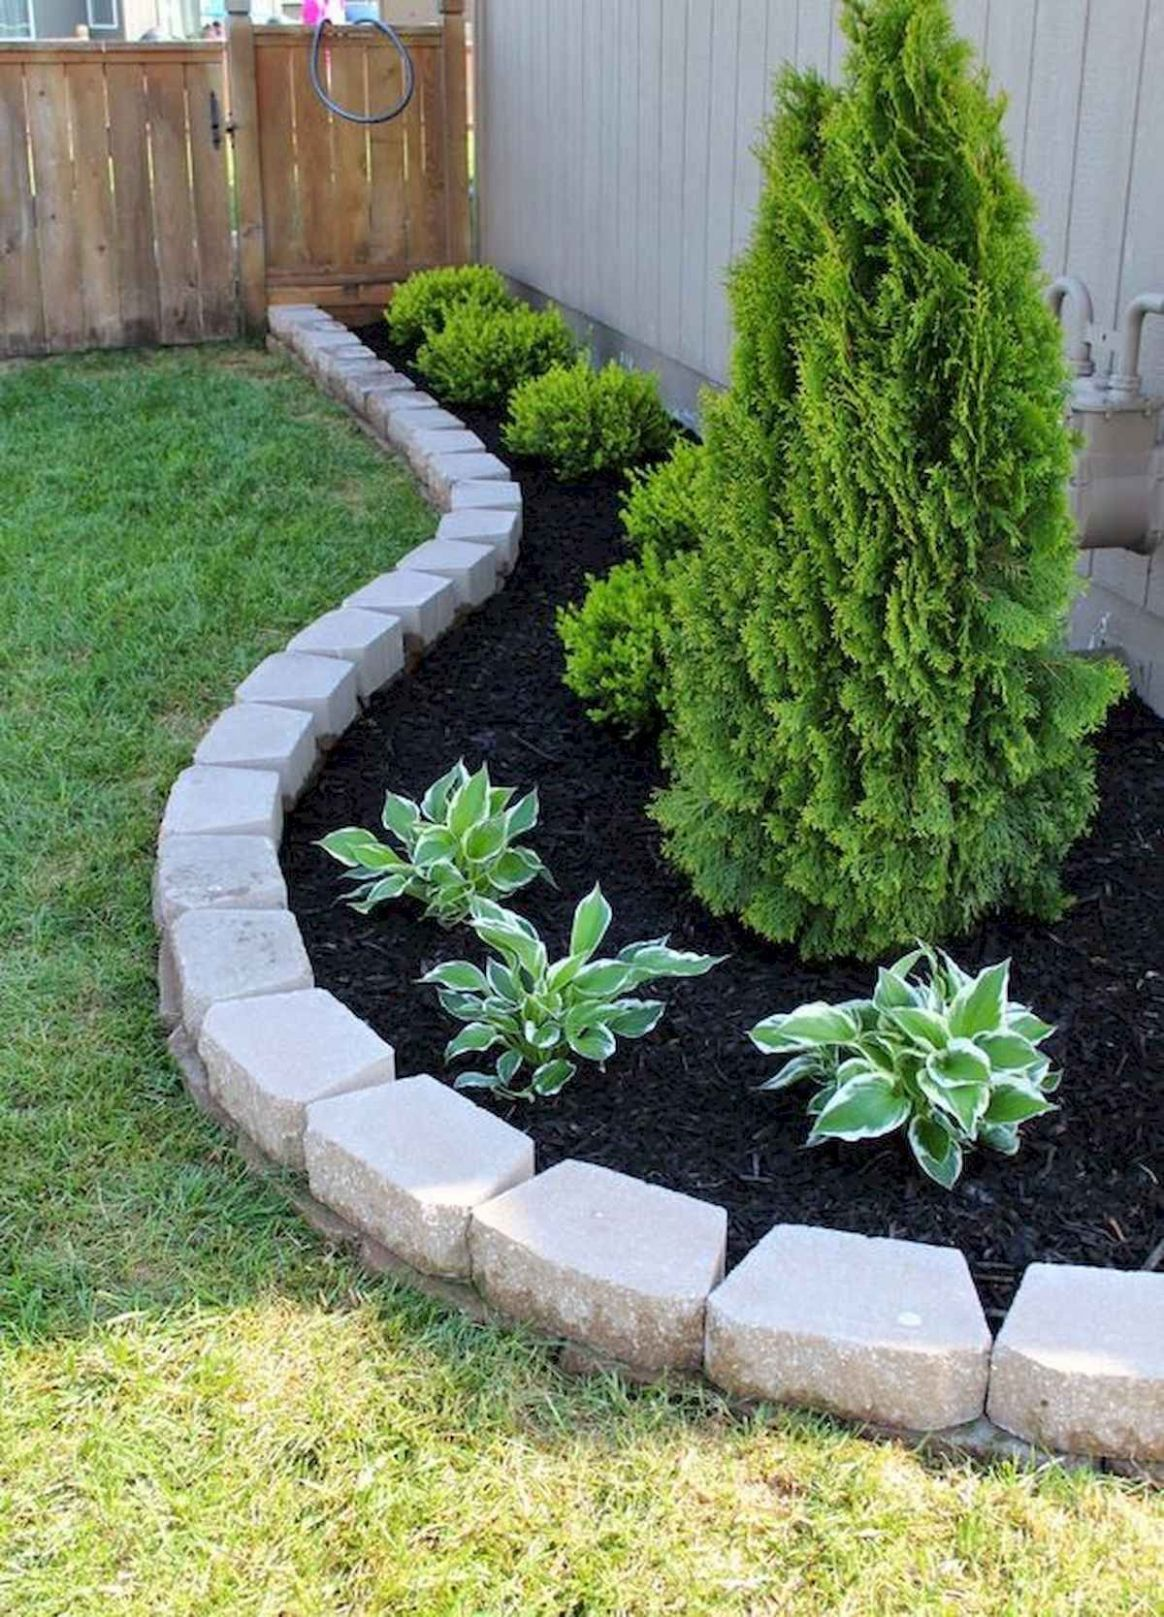 11 Simple and Beautiful Front Yard Landscaping Ideas on A Budget ..